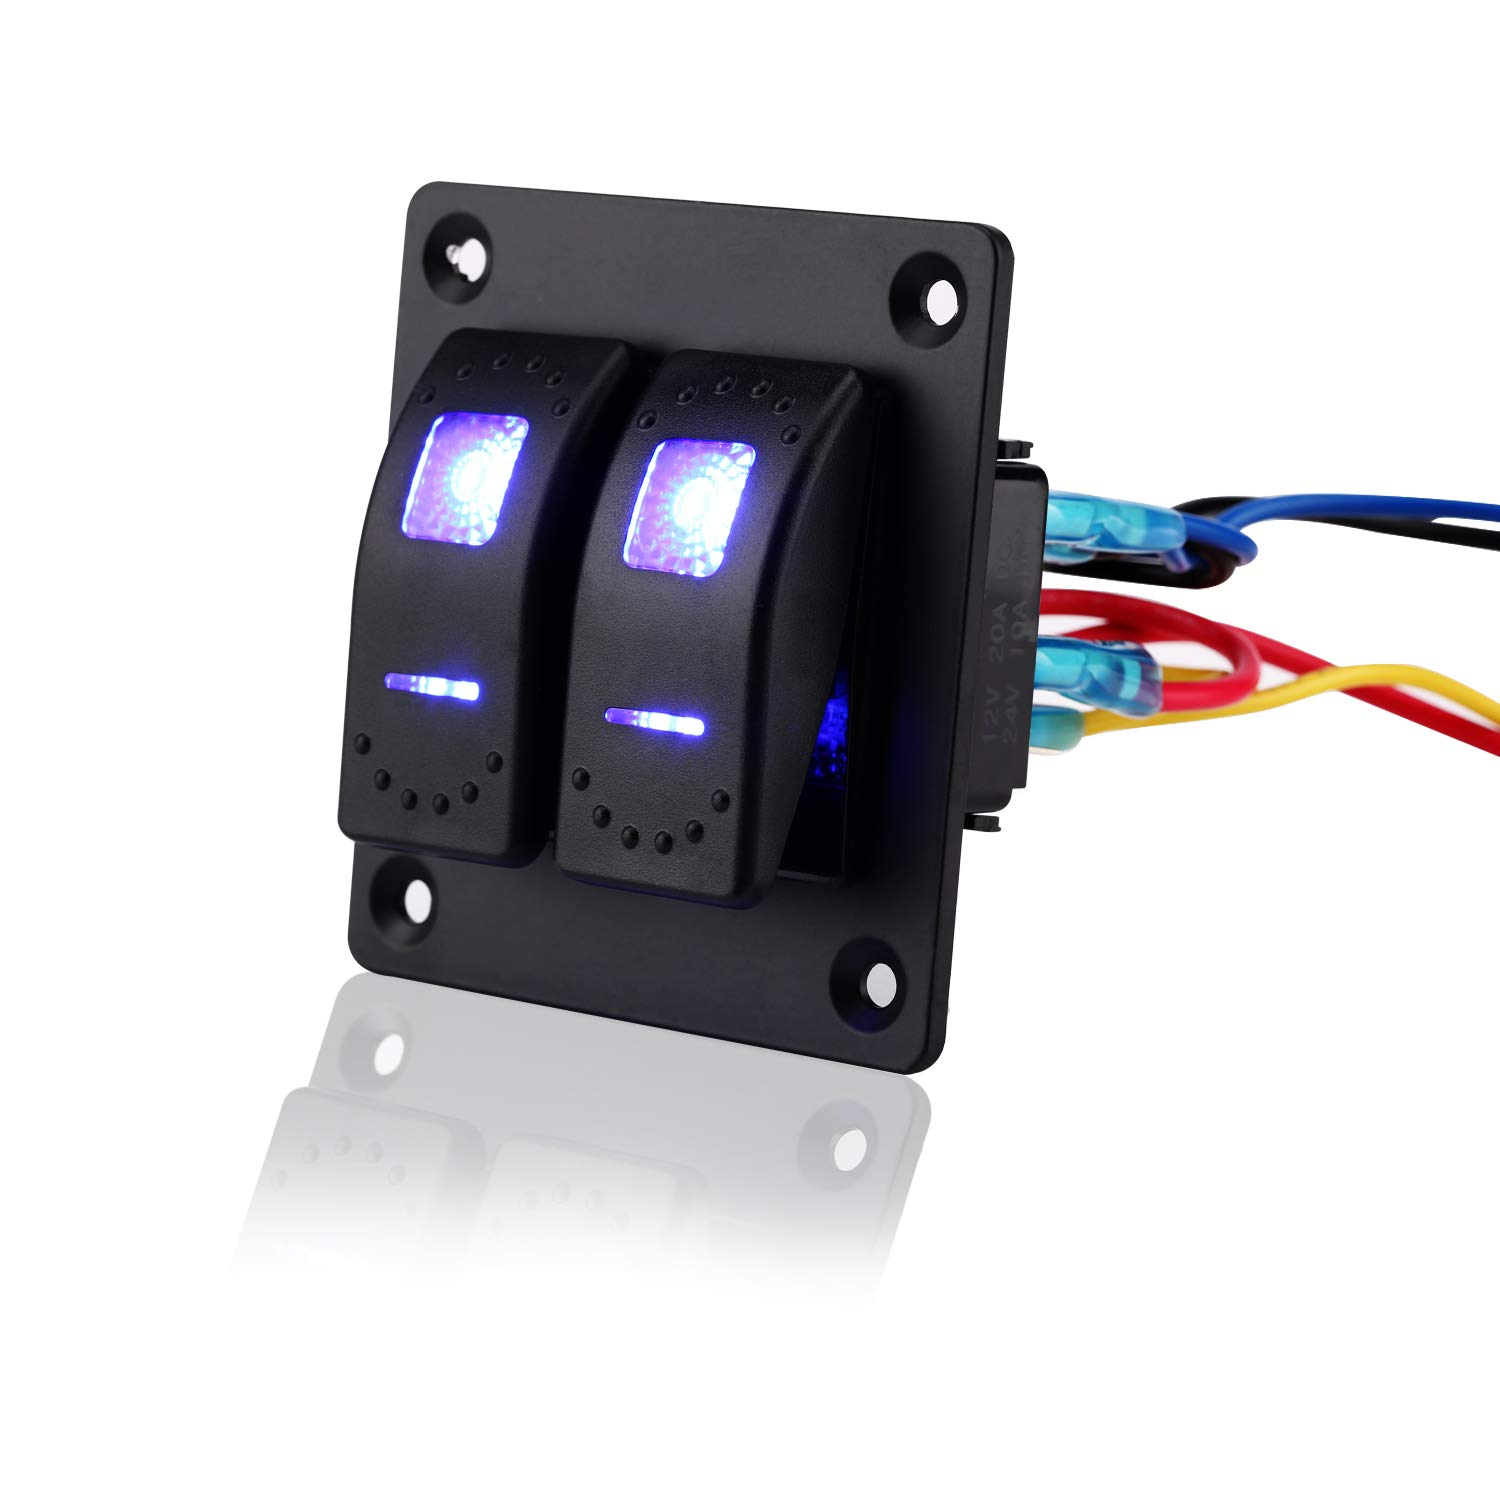 Jiaying Rocker Switch Aluminum Panel 12V 24V 2 Gang Toggle Switches Dash 5 Pin On Off Toggle Switch with Blue Backlit LED for Car Truck Boat Marine …